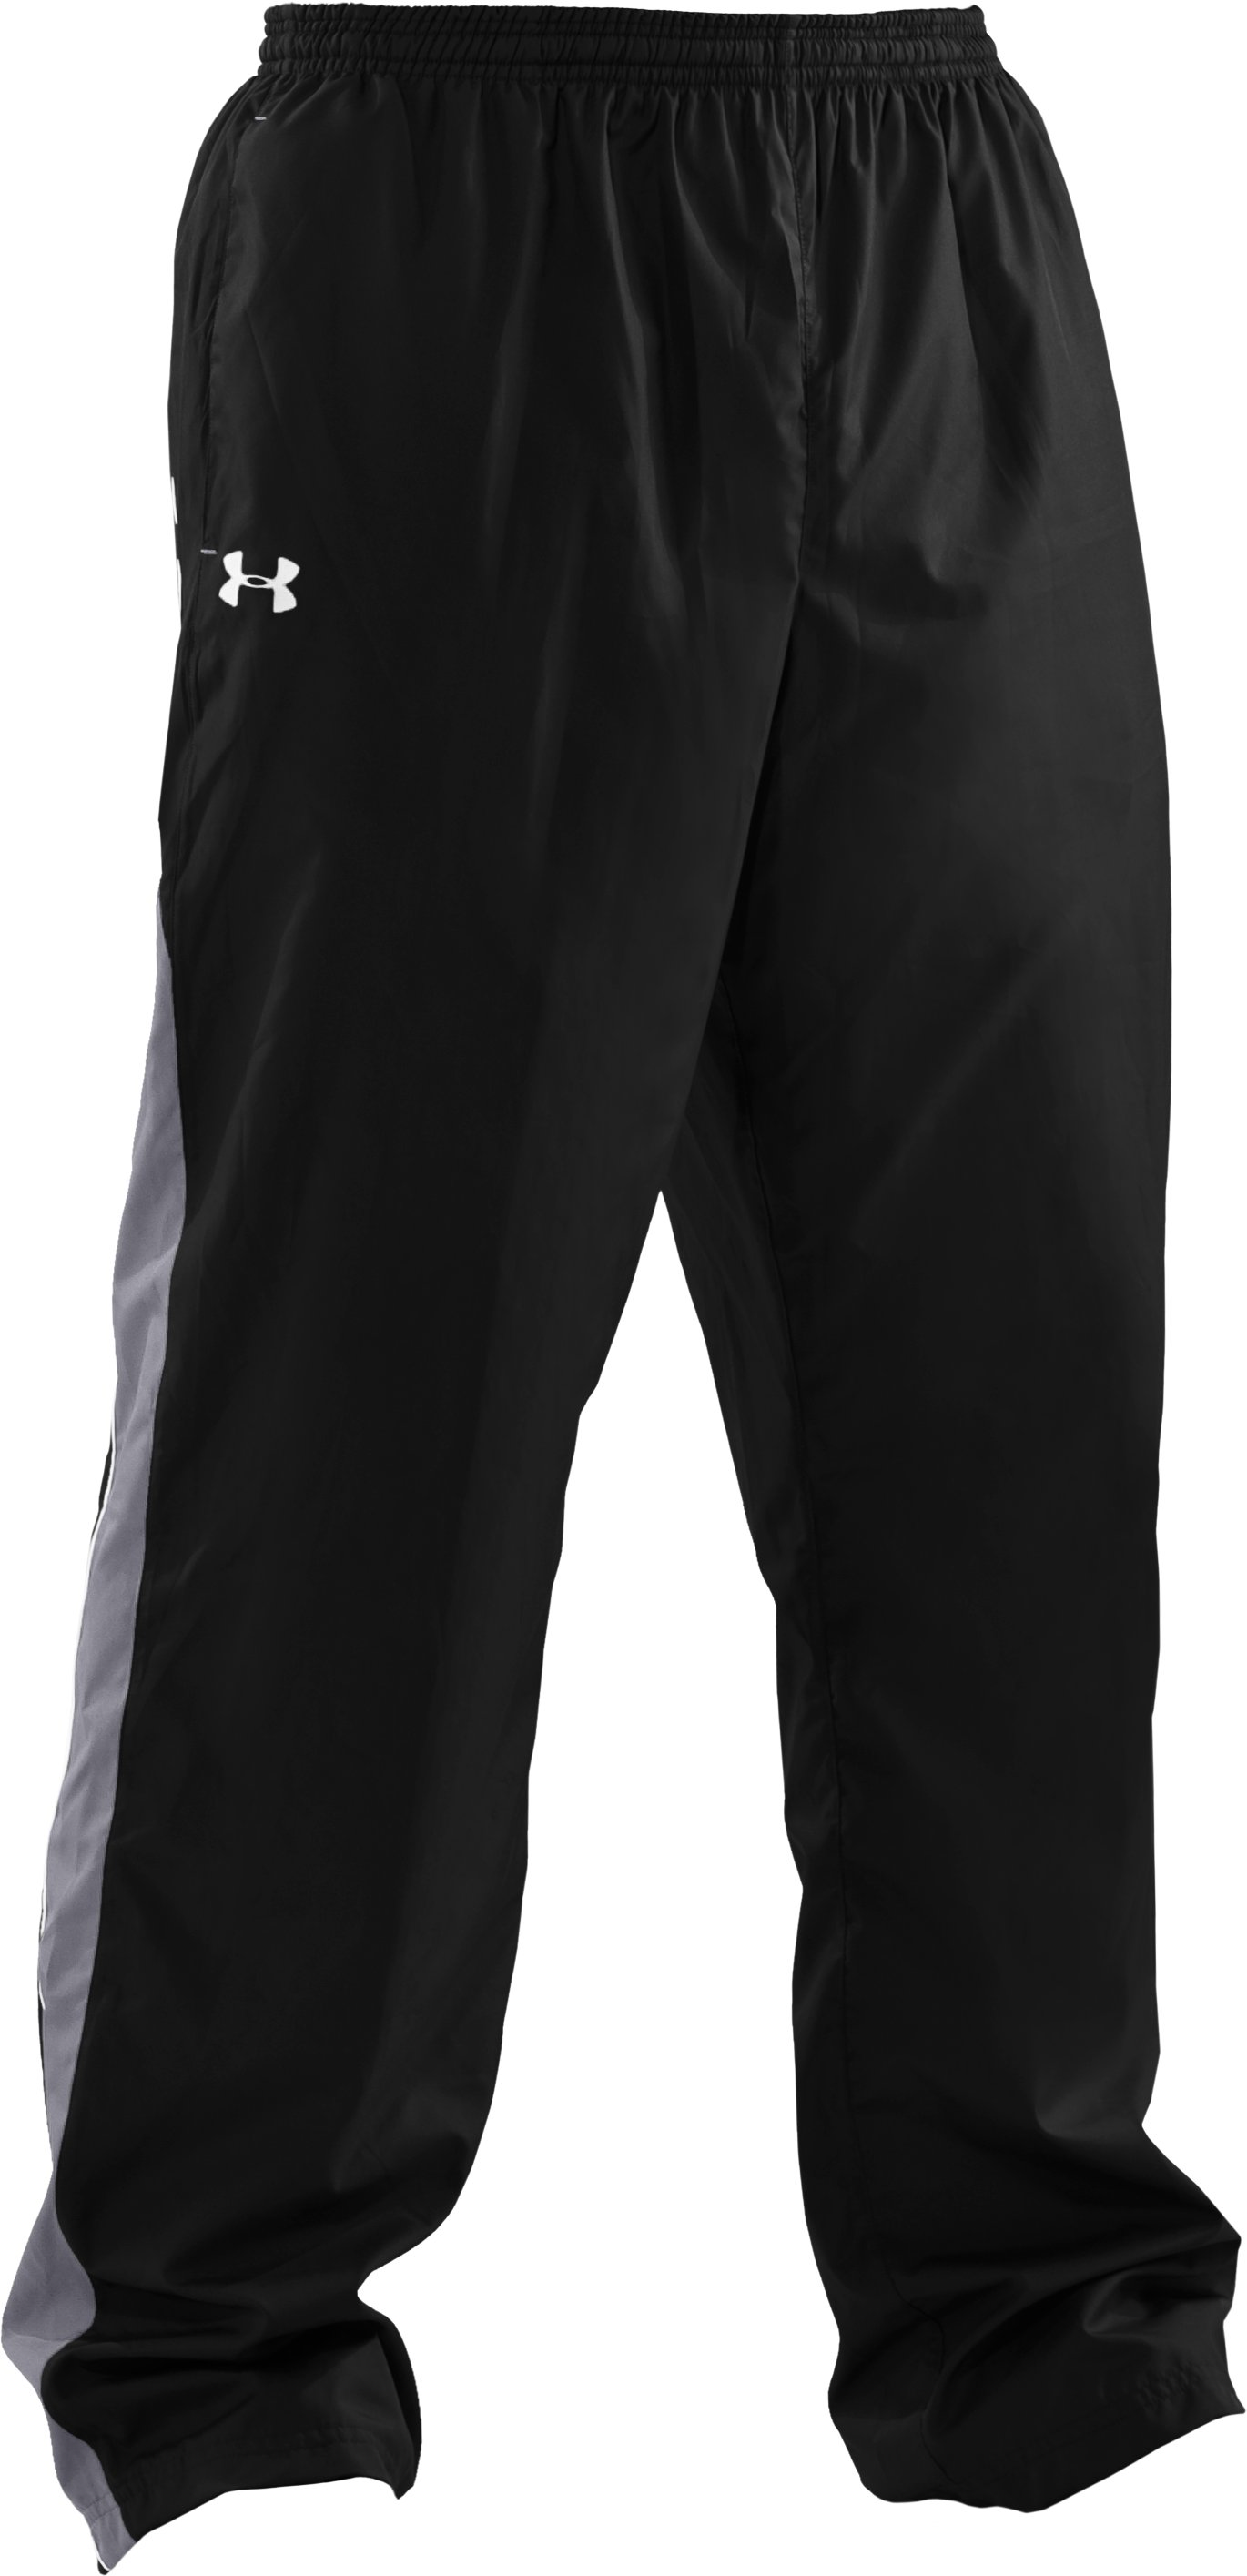 Men's UA Attack Woven Warm-Up Pants, Black